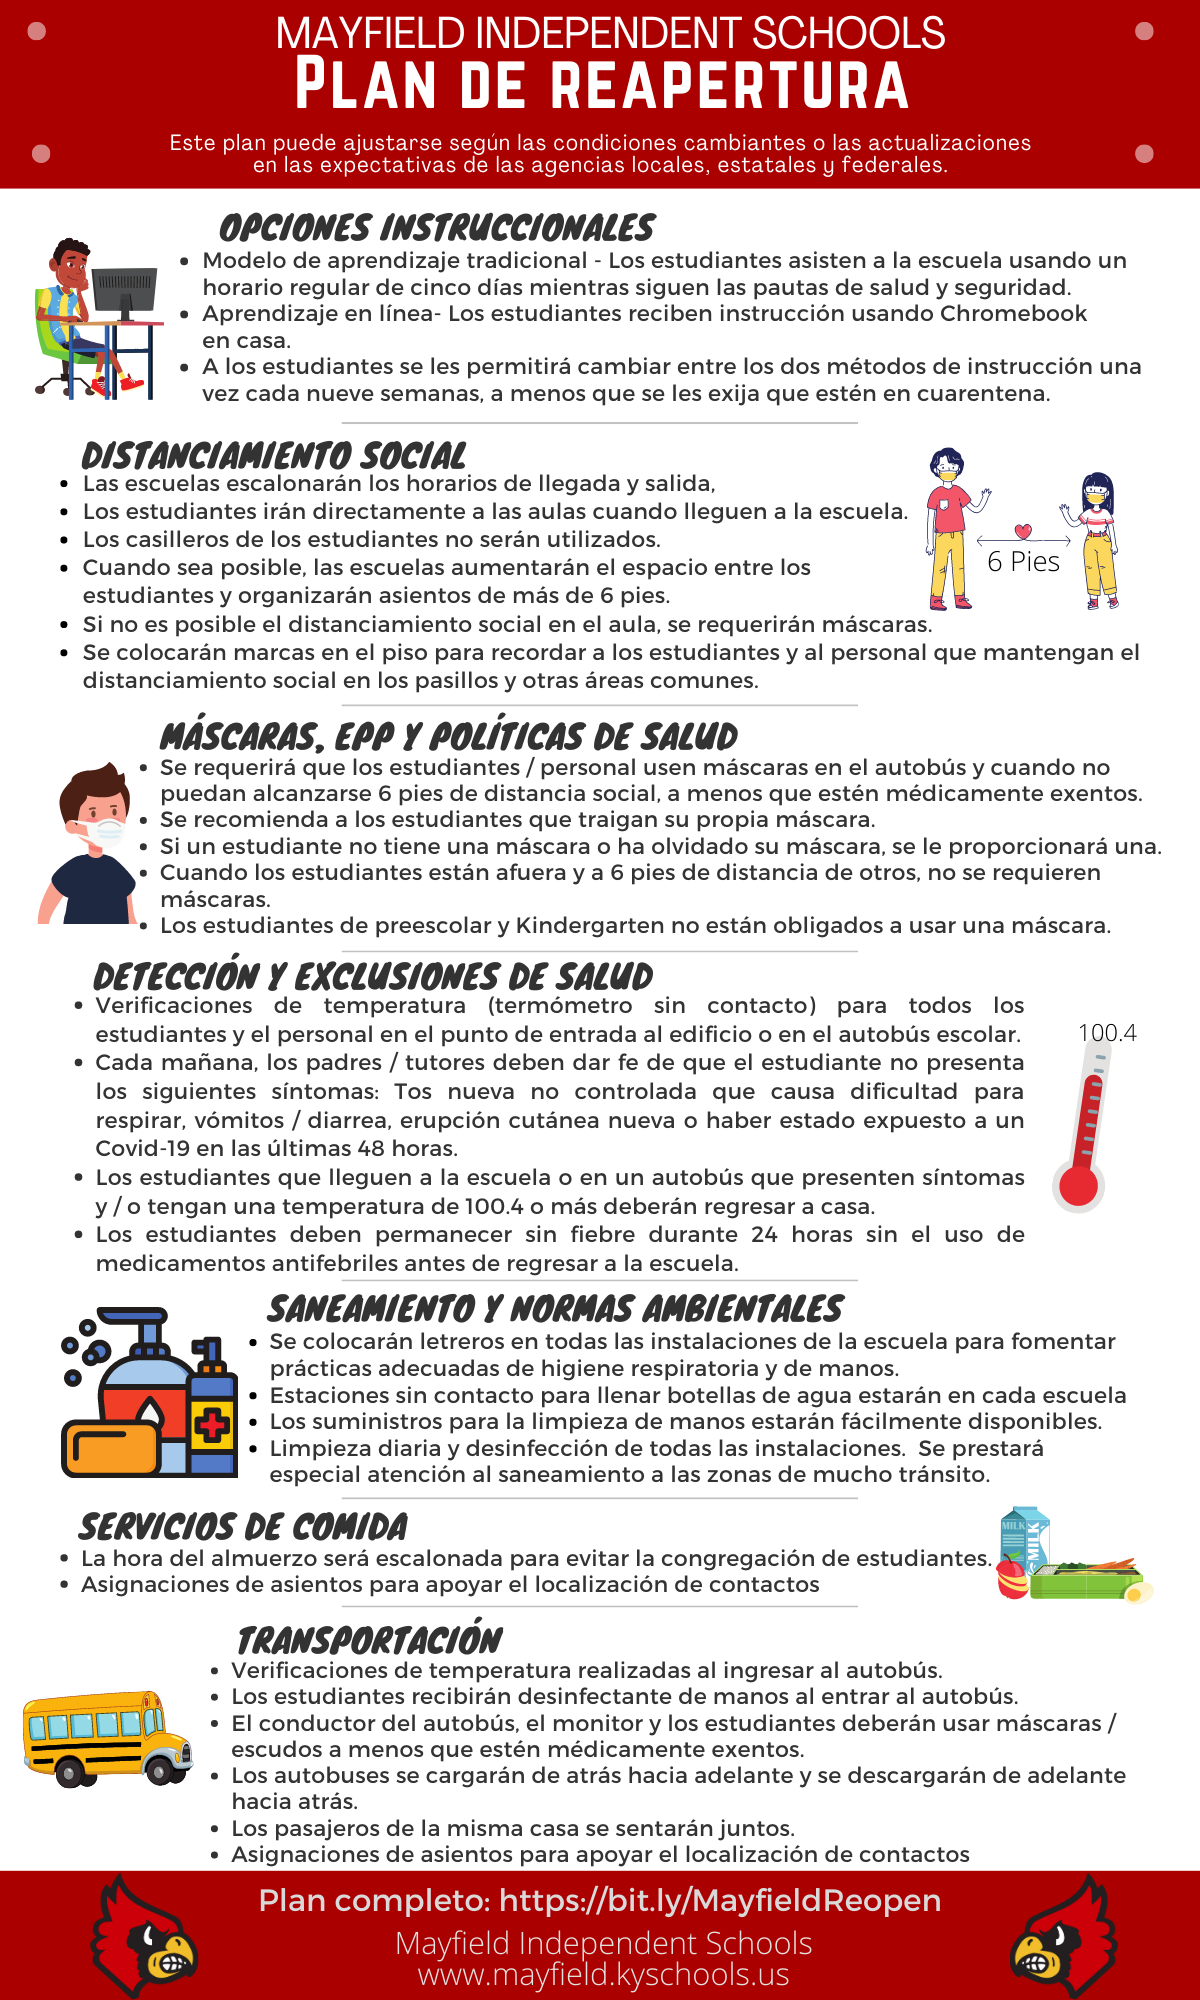 Photo of the Reopening Plan Infographic in Spanish.